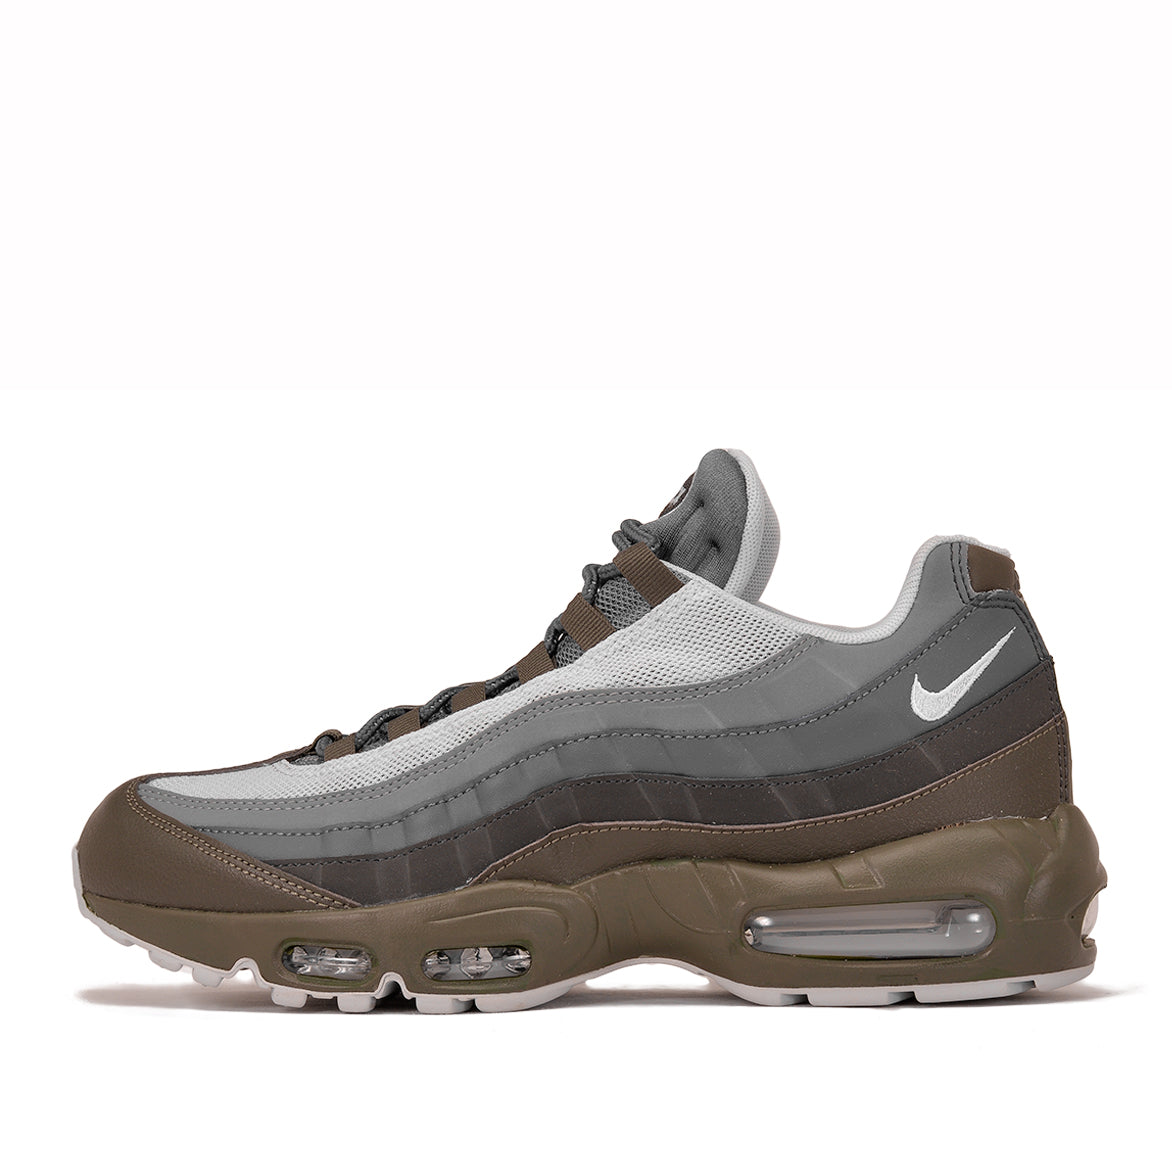 NIKE AIR MAX 95 ESSENTIAL - CARGO KHAKI / PURE PLATINUM ...